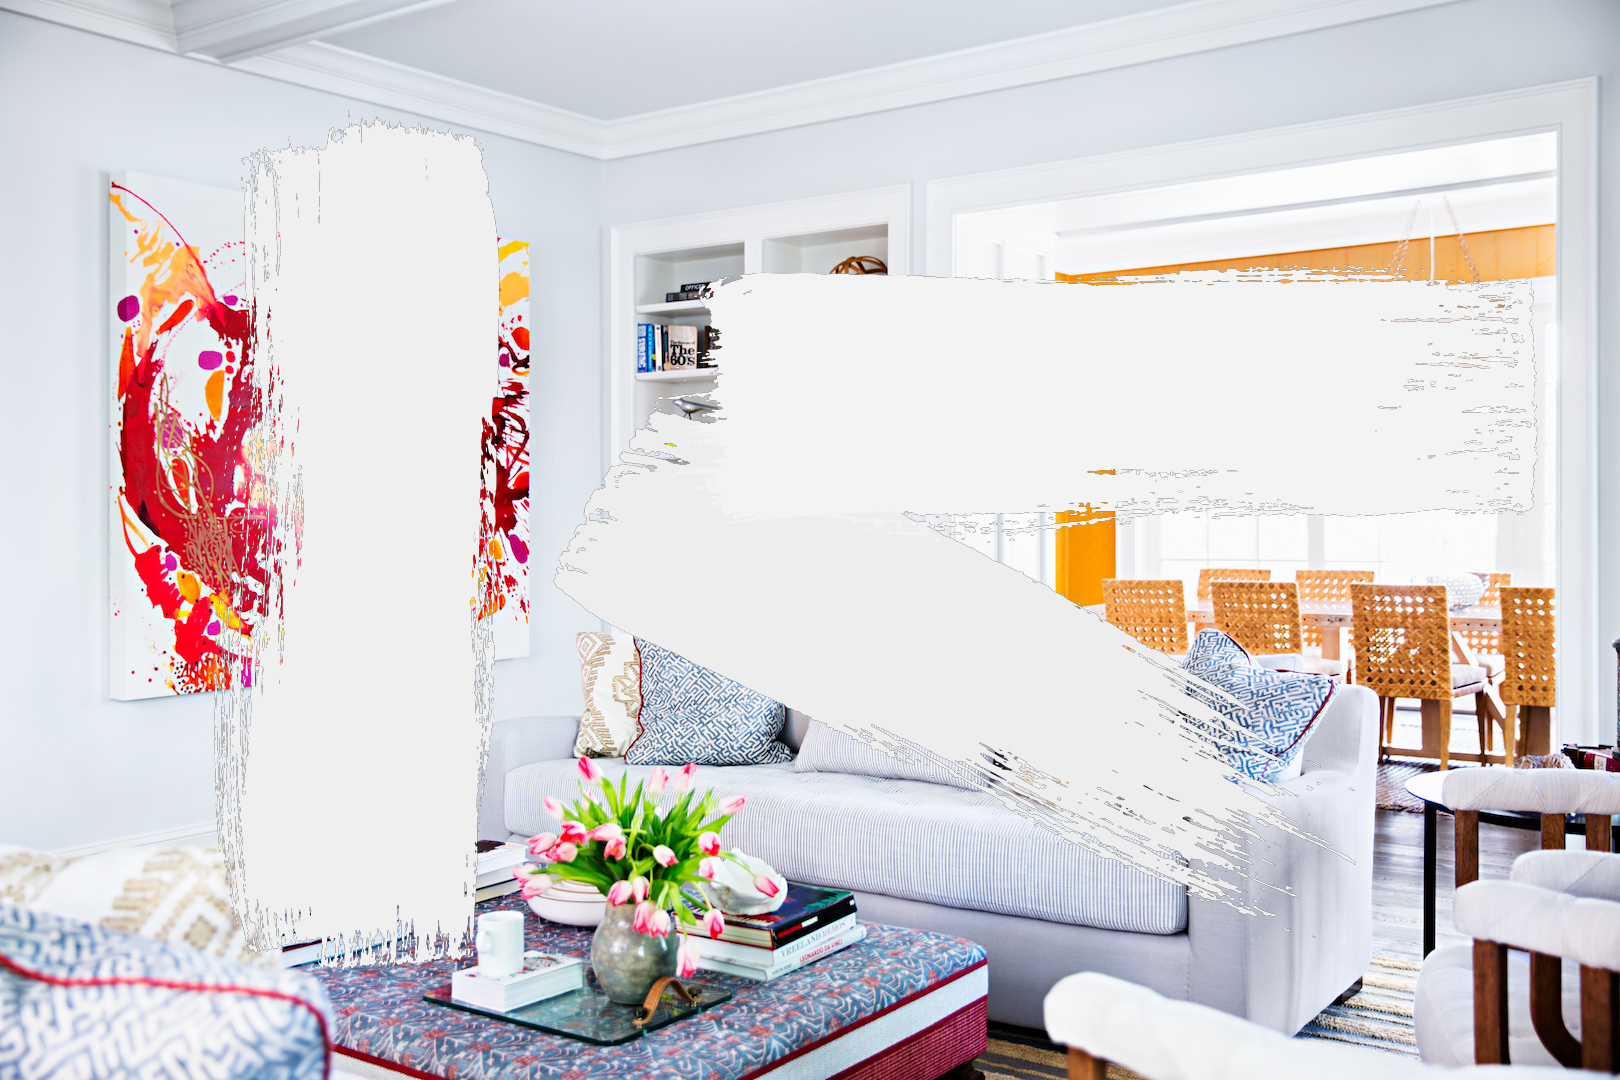 21 Best White Paint Colors For Every Room According To